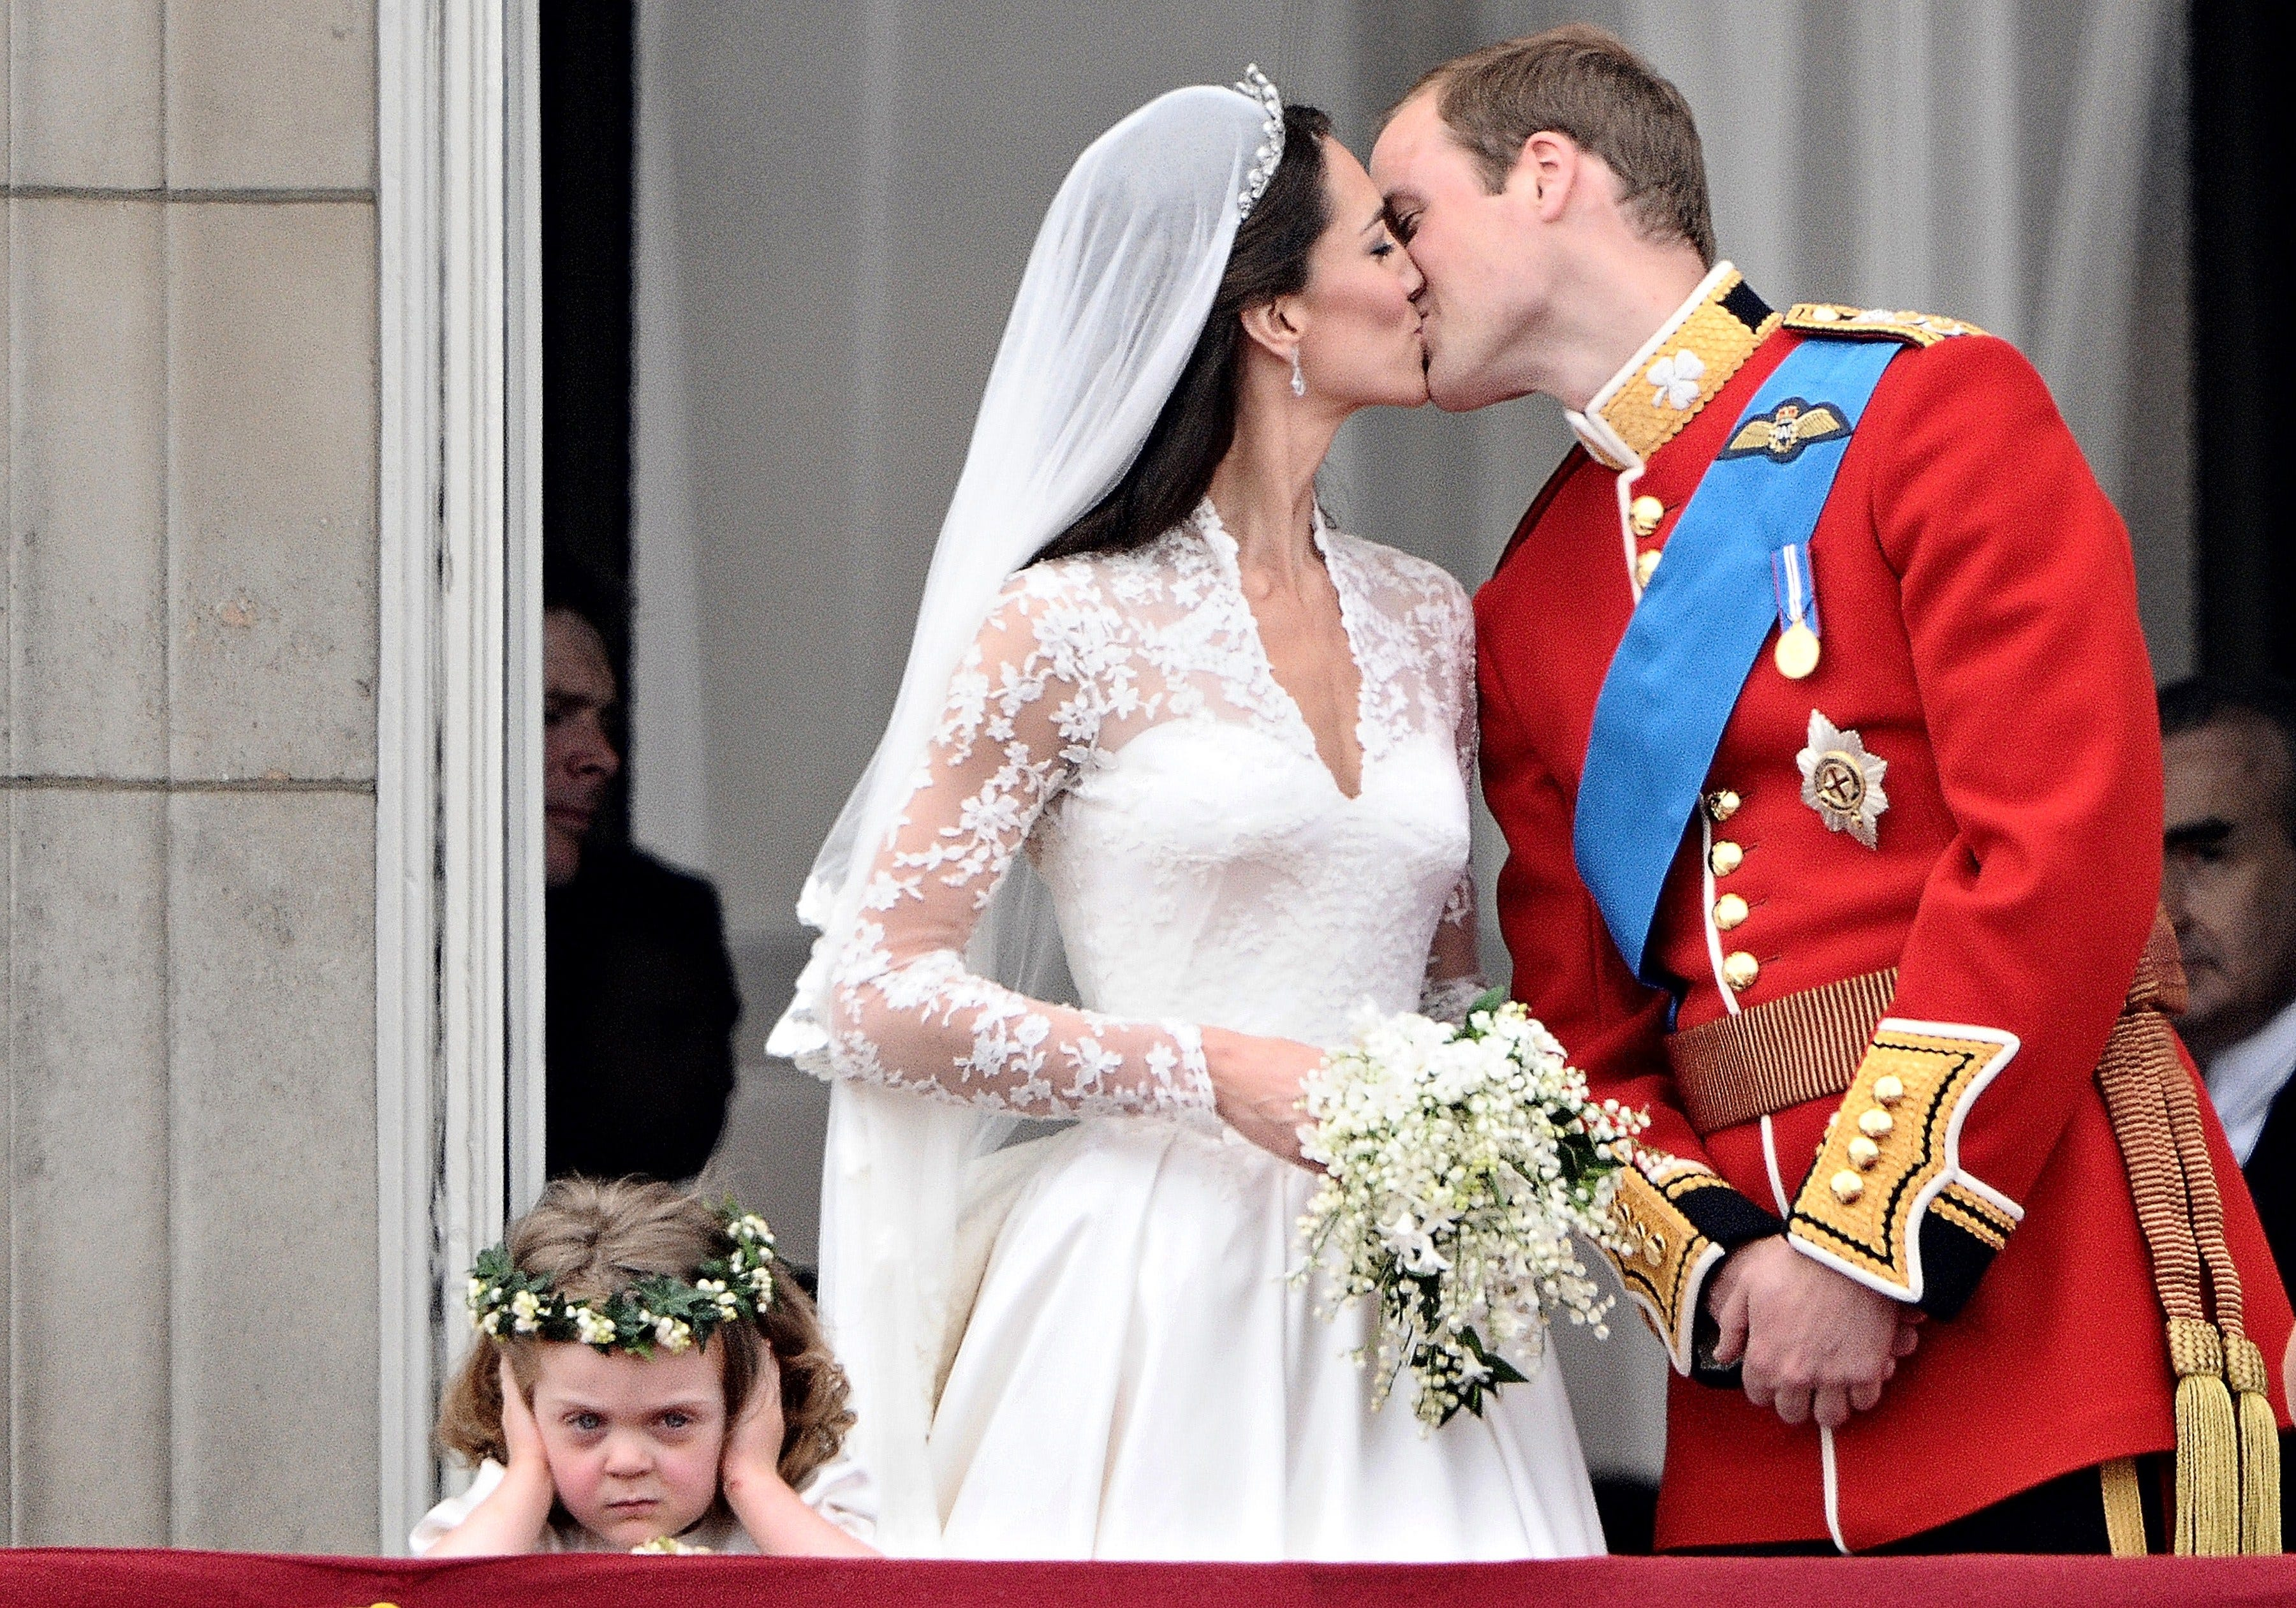 Will and Kate: A look at the 10 years since the royal wedding